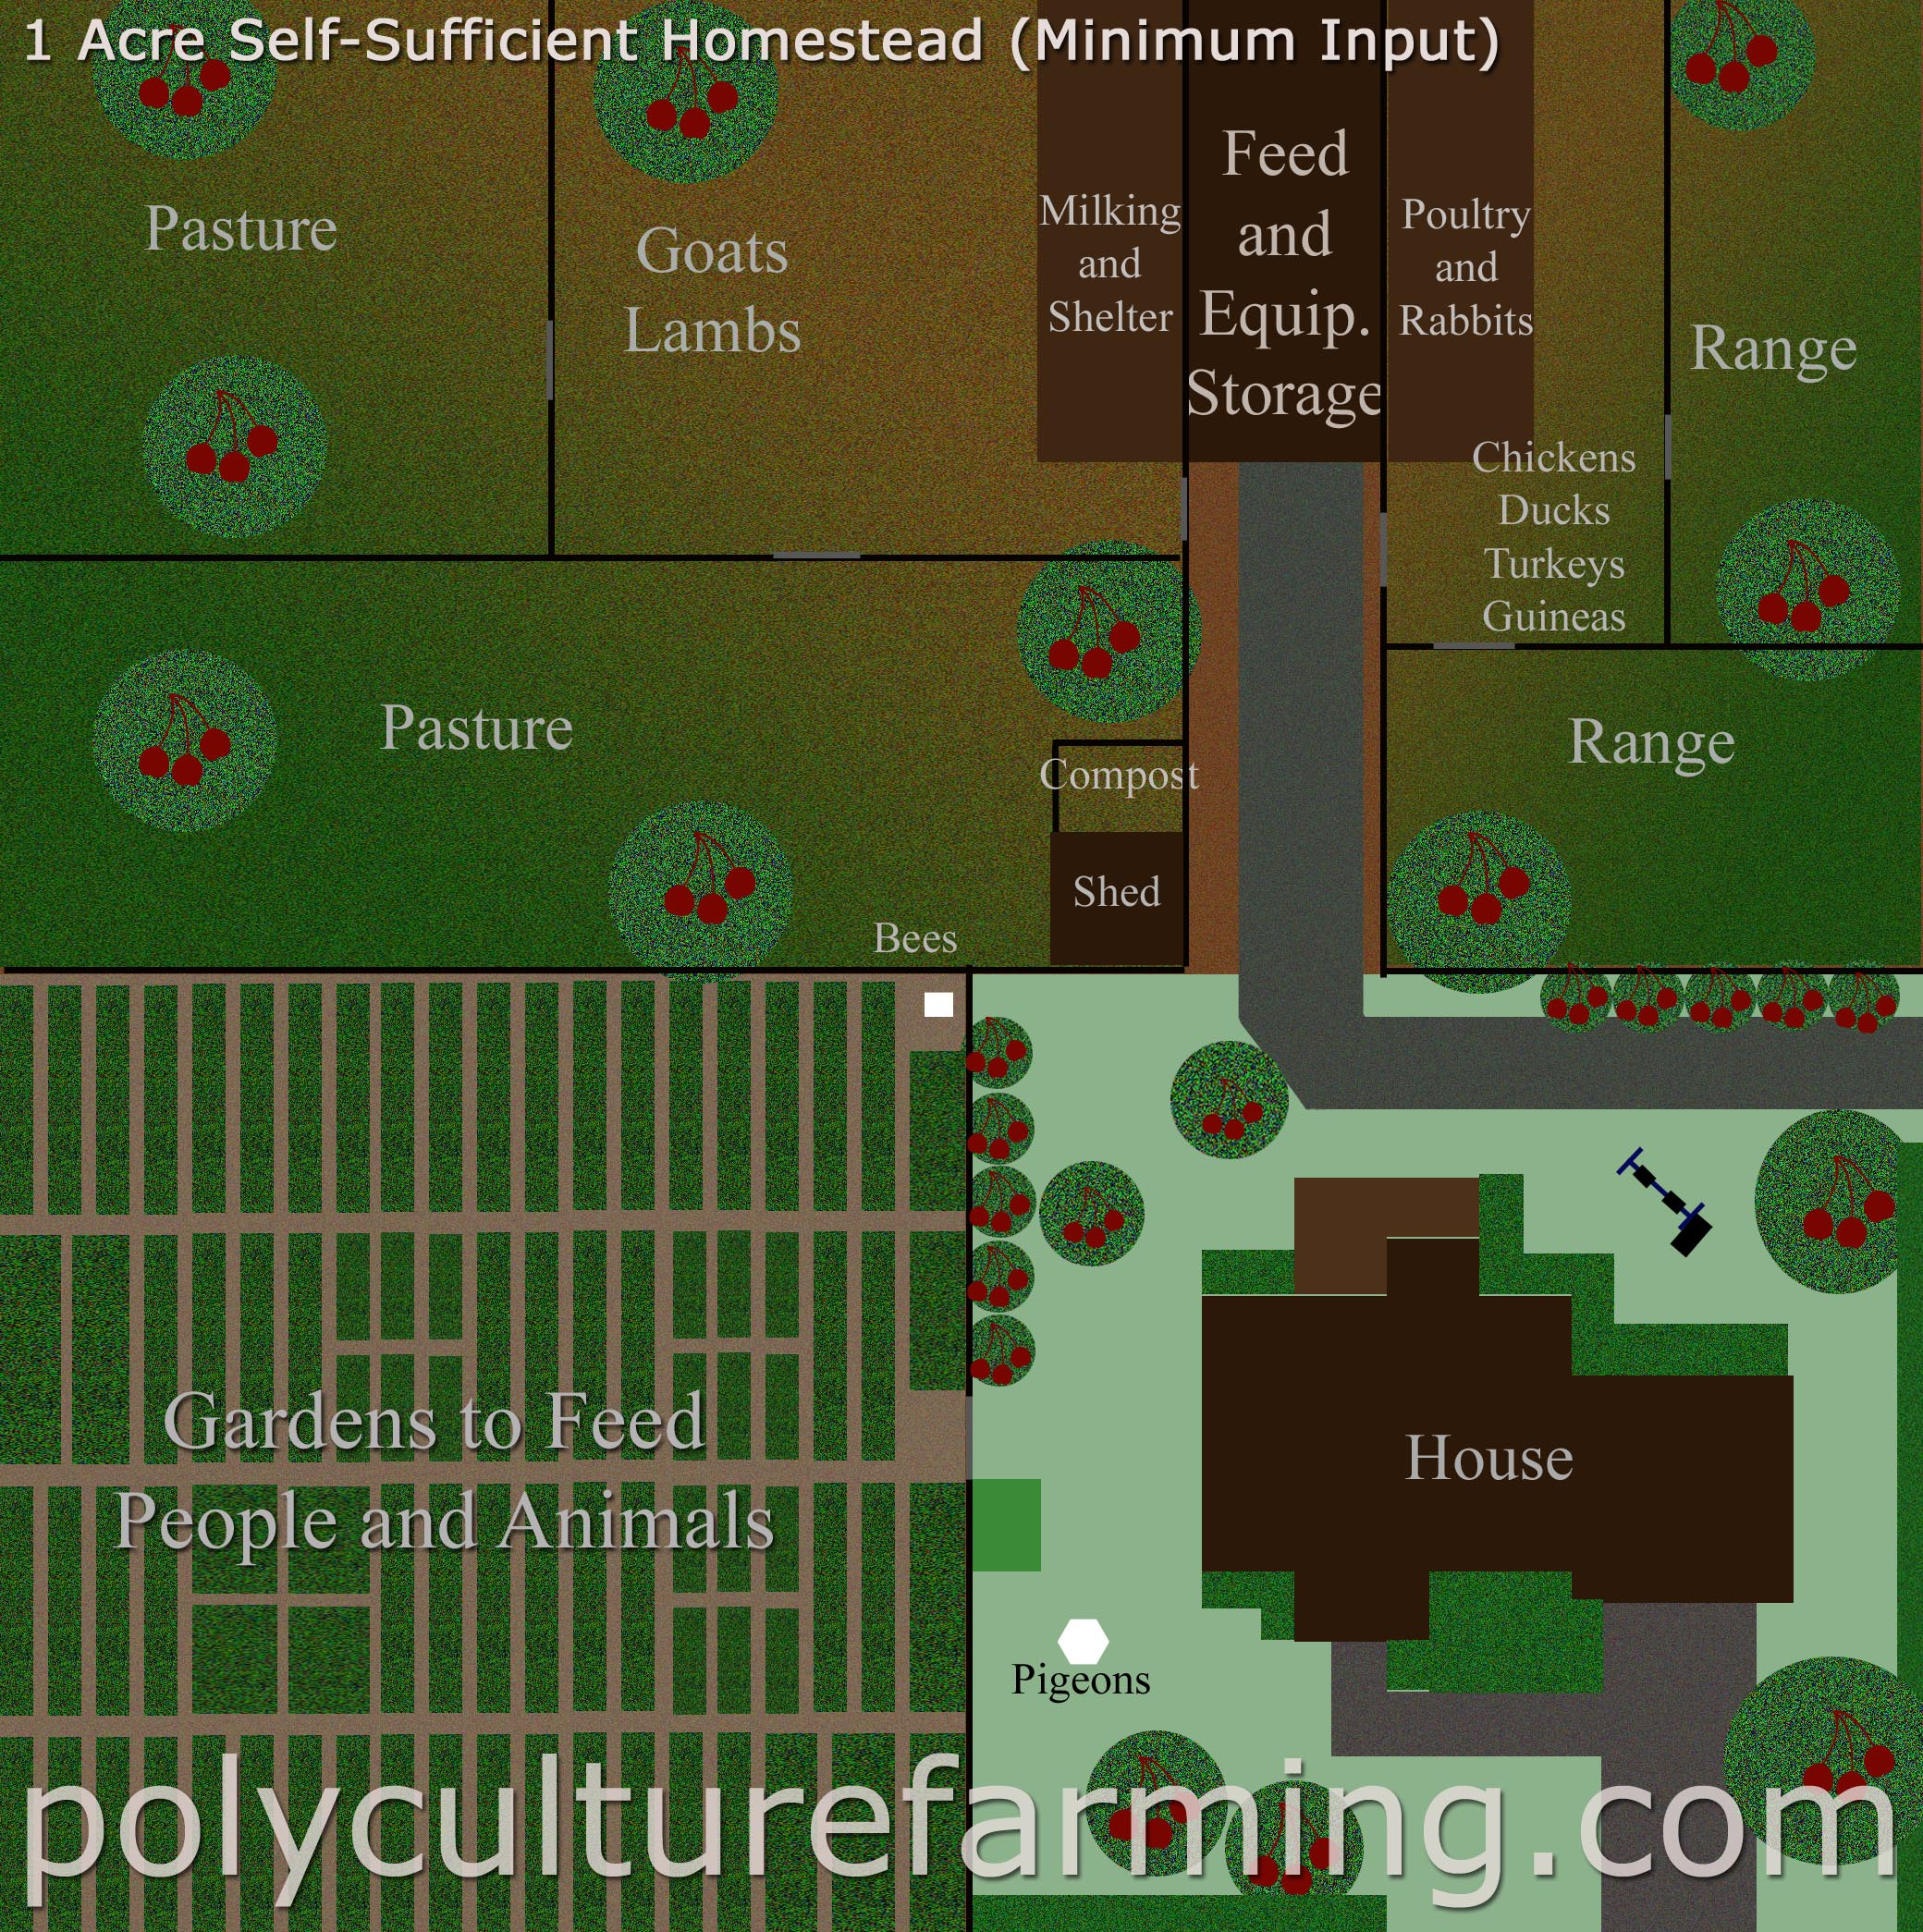 Real self sufficiency on 1 acre 1 acre farm layout